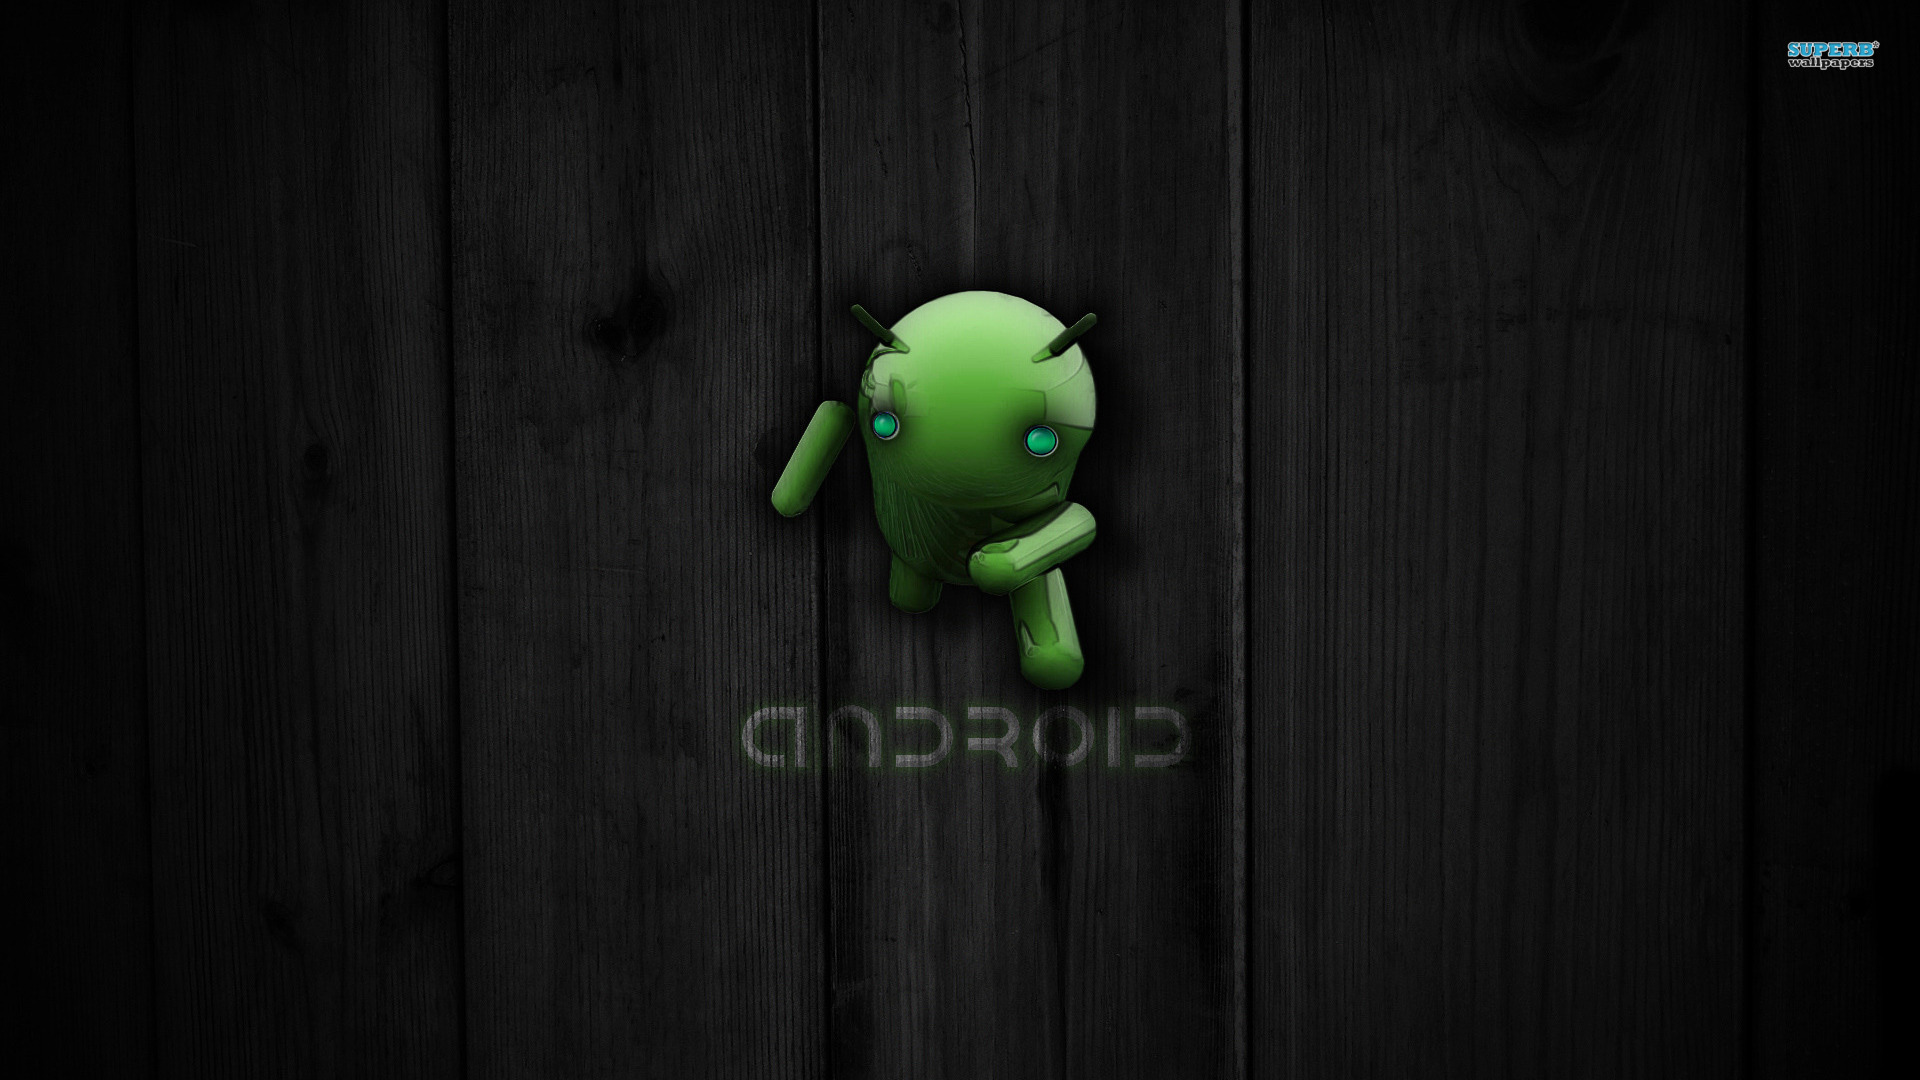 3d android wallpaper wallpapersafari